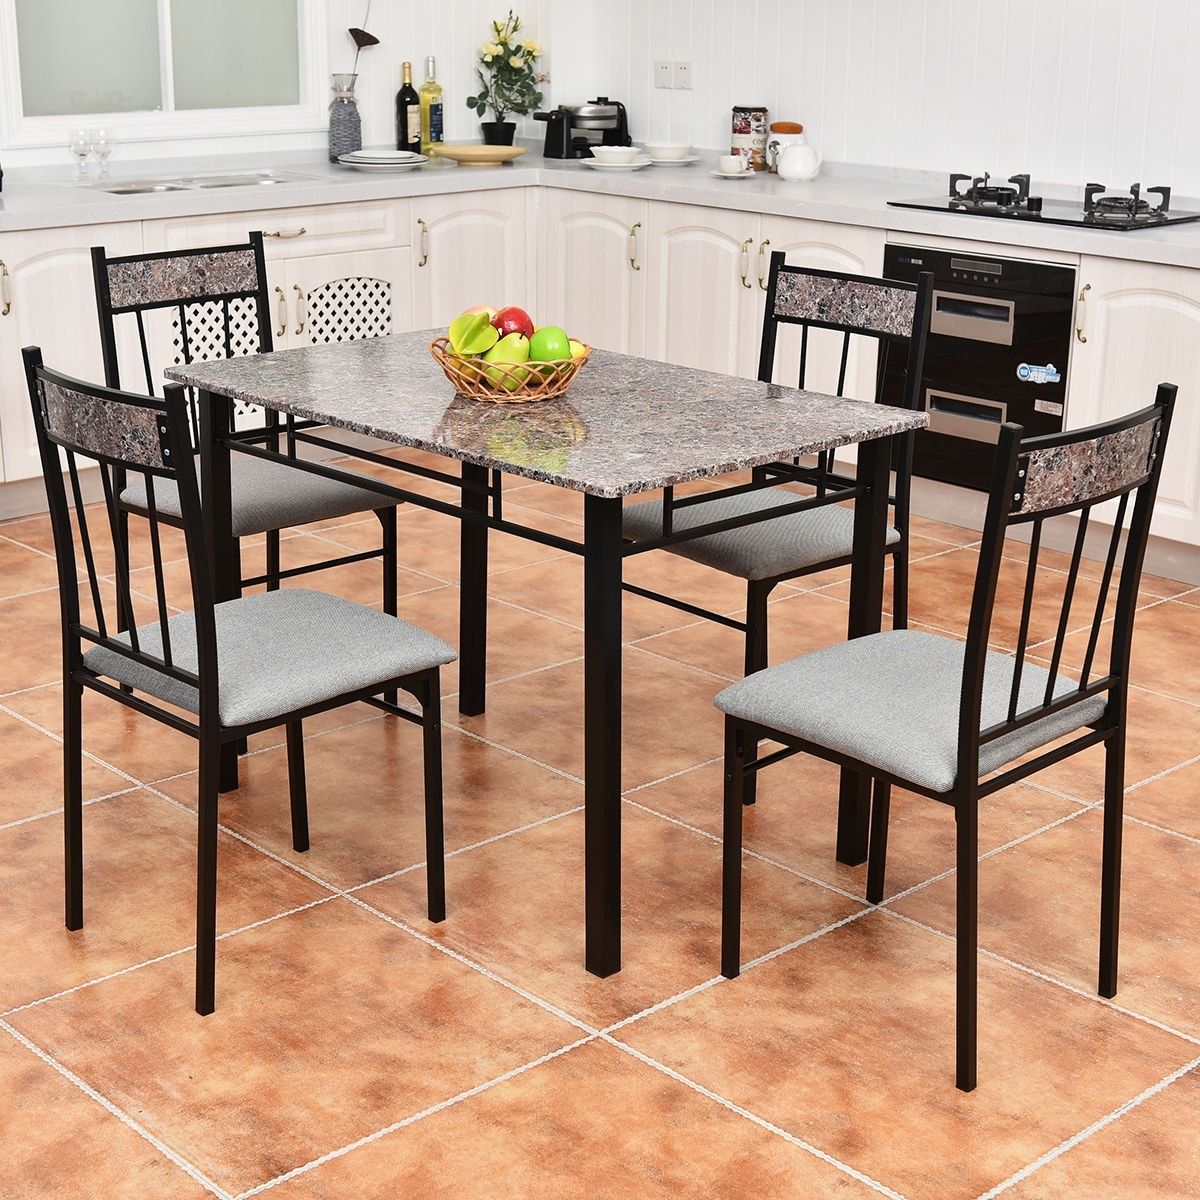 Shop costway 5 piece faux marble dining set table and 4 chairs kitchen breakfast furniture free shipping today overstock com 15869058